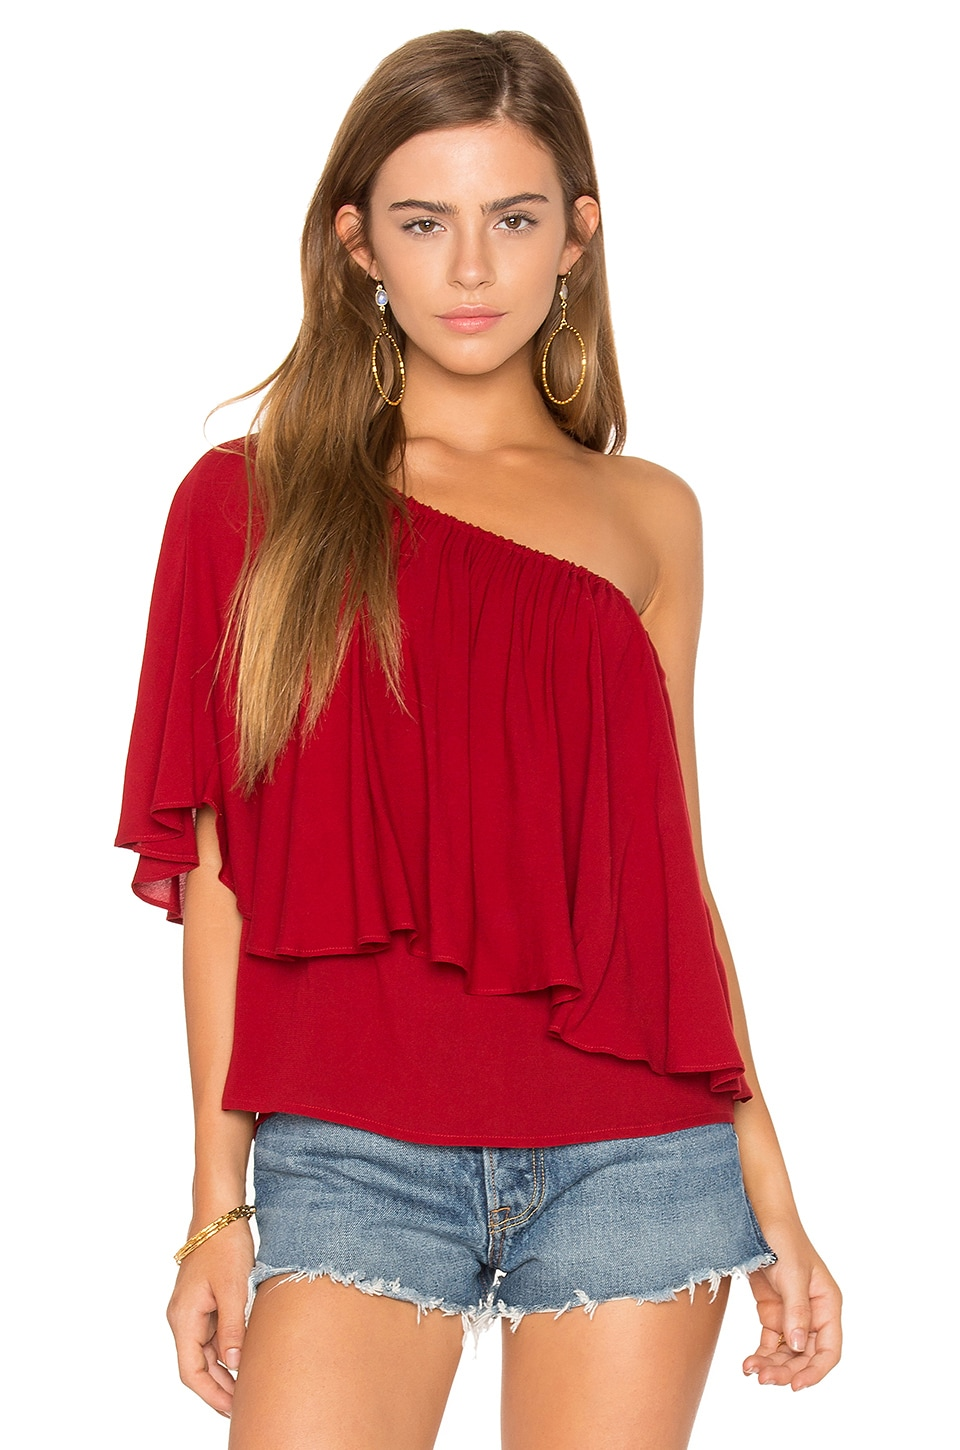 Ella Moss Stella Top in Brick